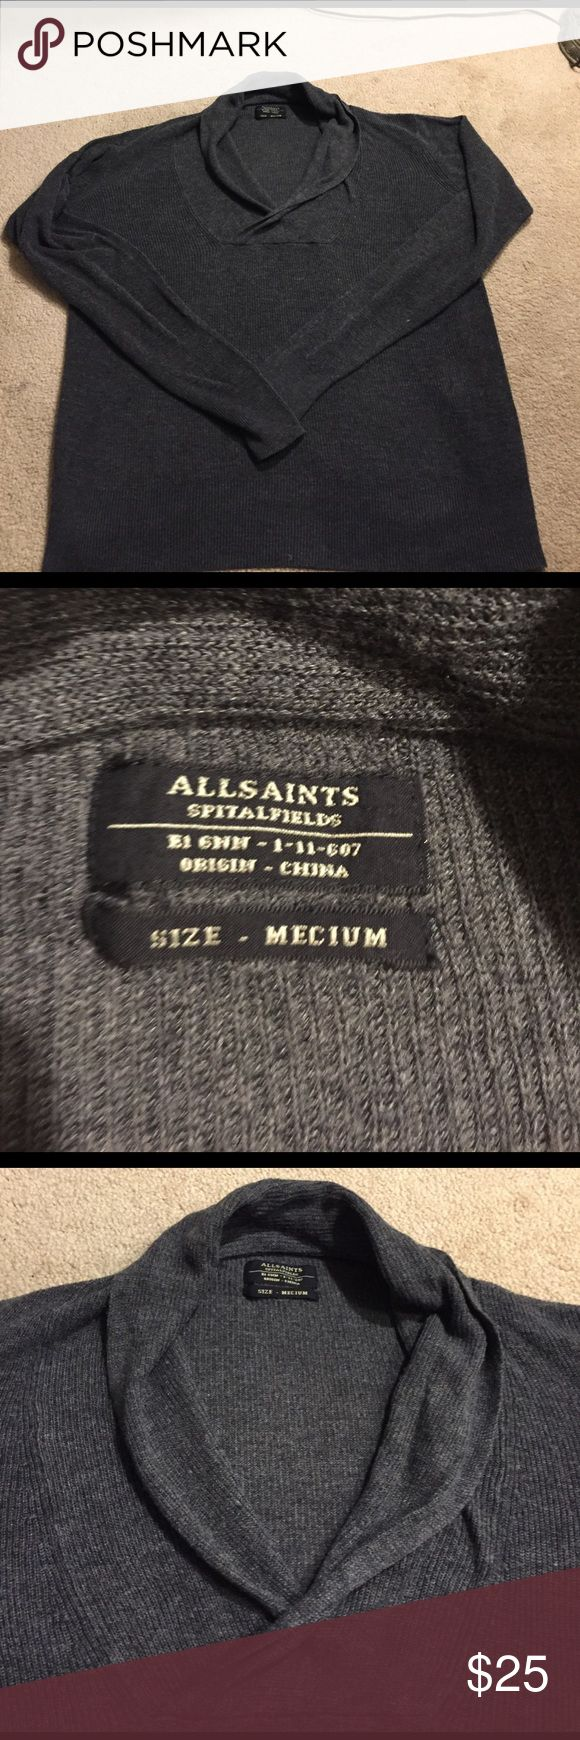 All Saints Men's Sweater Size Medium Black, men's All Saints sweater. Sweater shows off definition in arms/biceps. Sweaters V-Neck